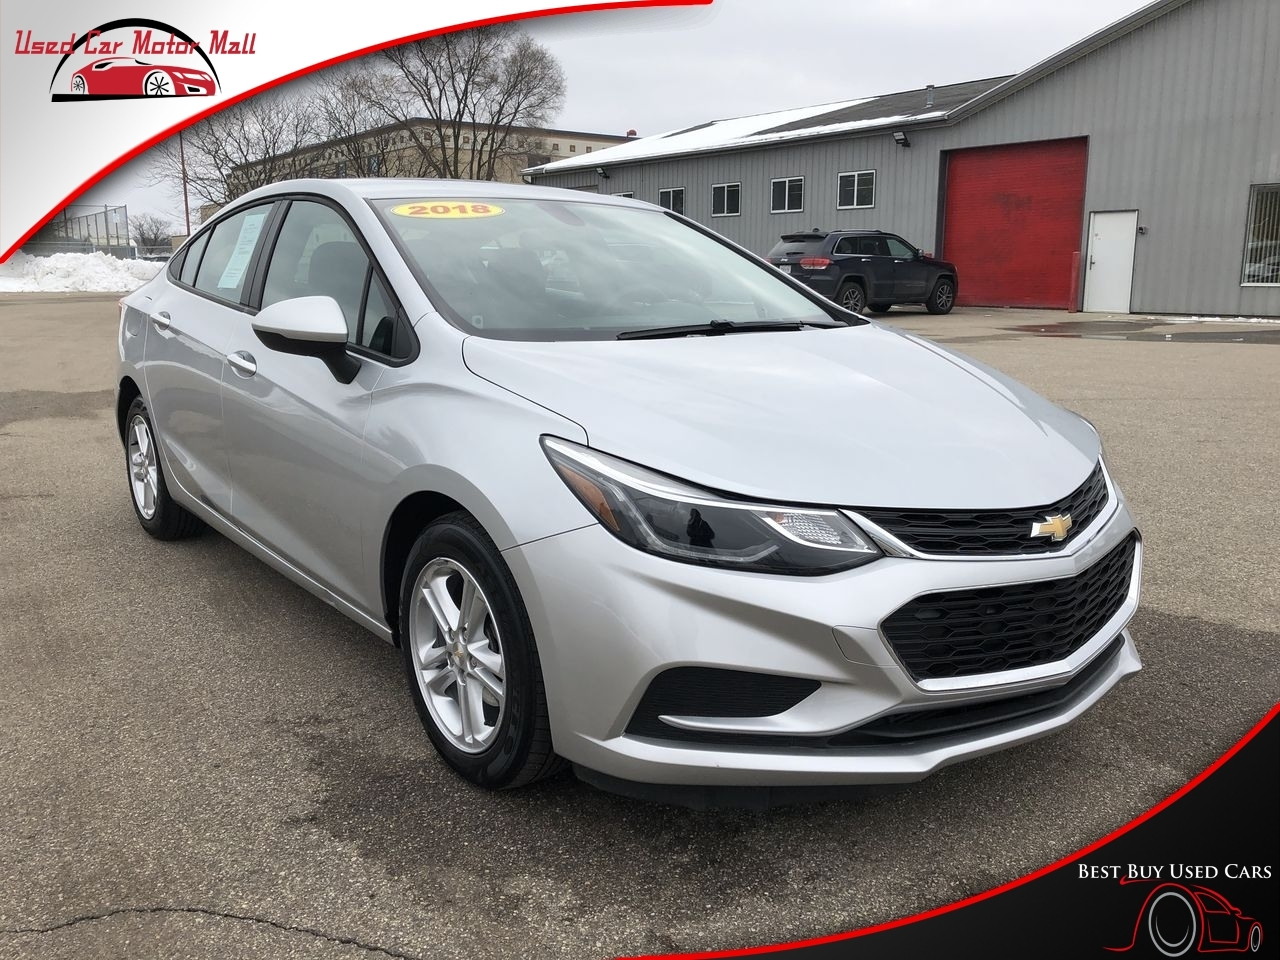 2017 Chevrolet Cruze LS Sedan FWD, 122215-2, Photo 1